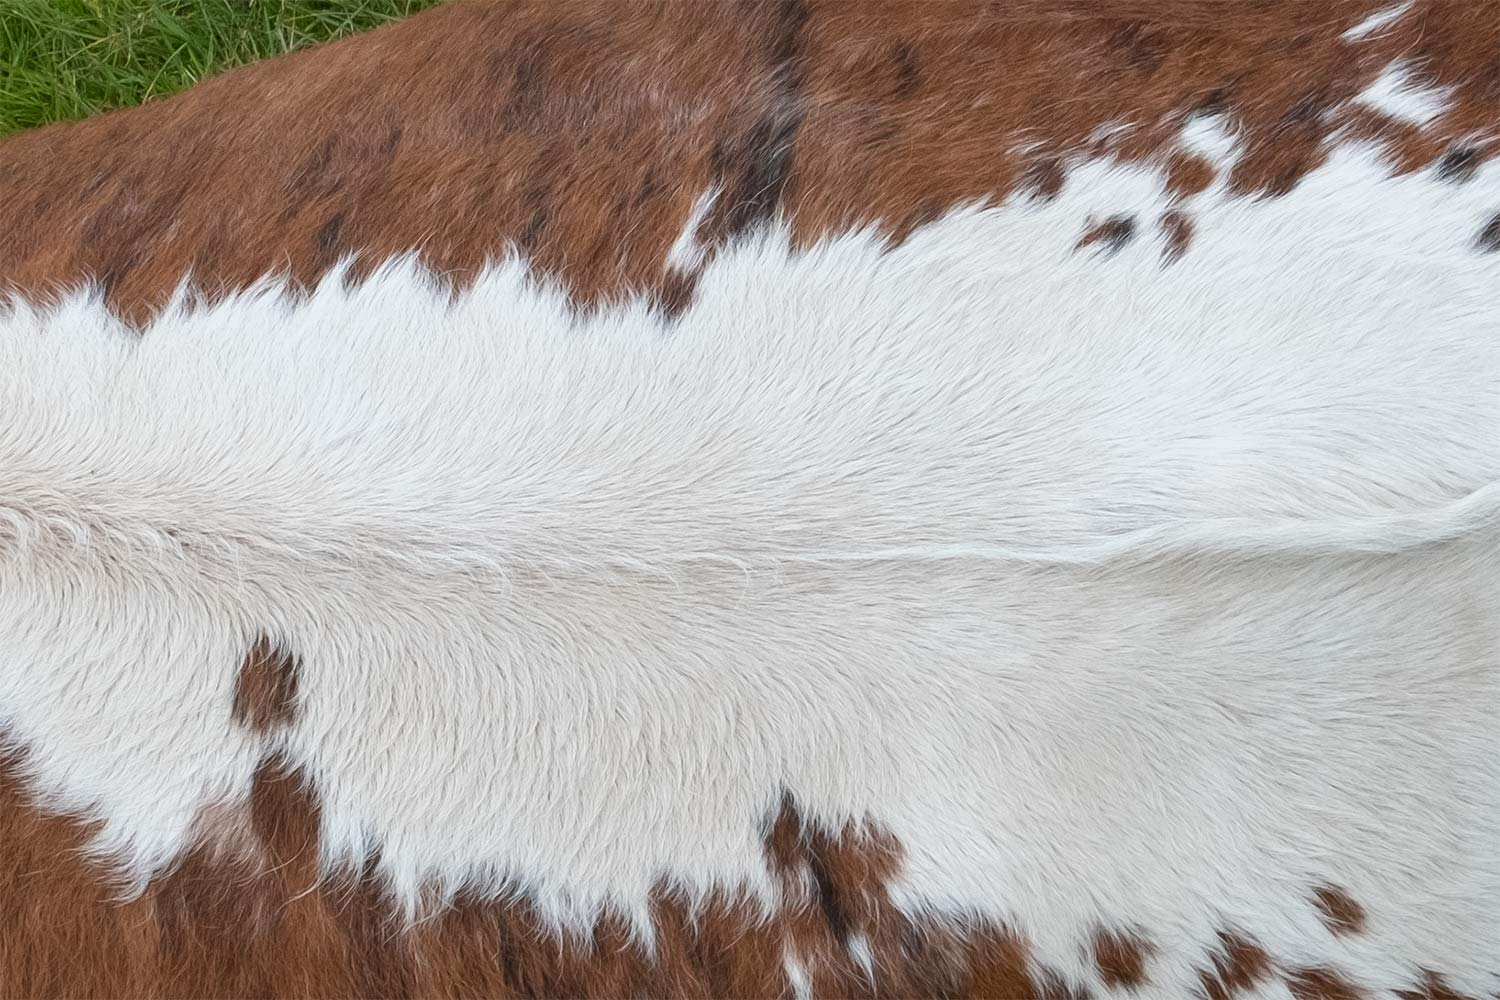 close up of Hereford cow sitting on grass in a field viewed from above showing the colour of its hair and hide and the markings along its back on its body